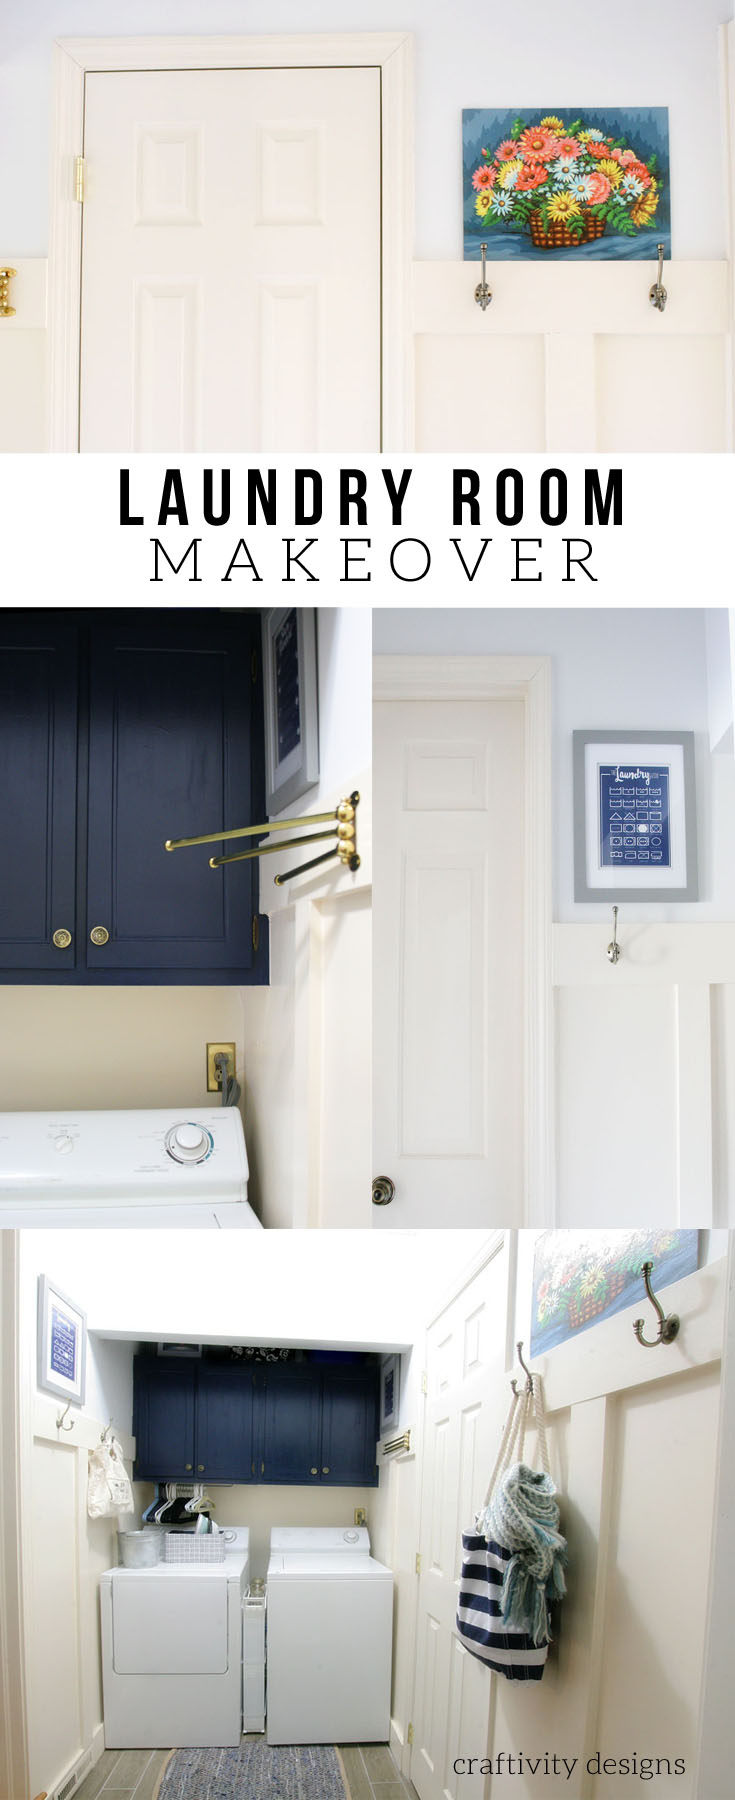 Small Laundry Room and Mudroom Makeover. Navy Laundry Room Renovation. Mudroom Renovation. Laundry Room and Mudroom Design. by @CraftivityD